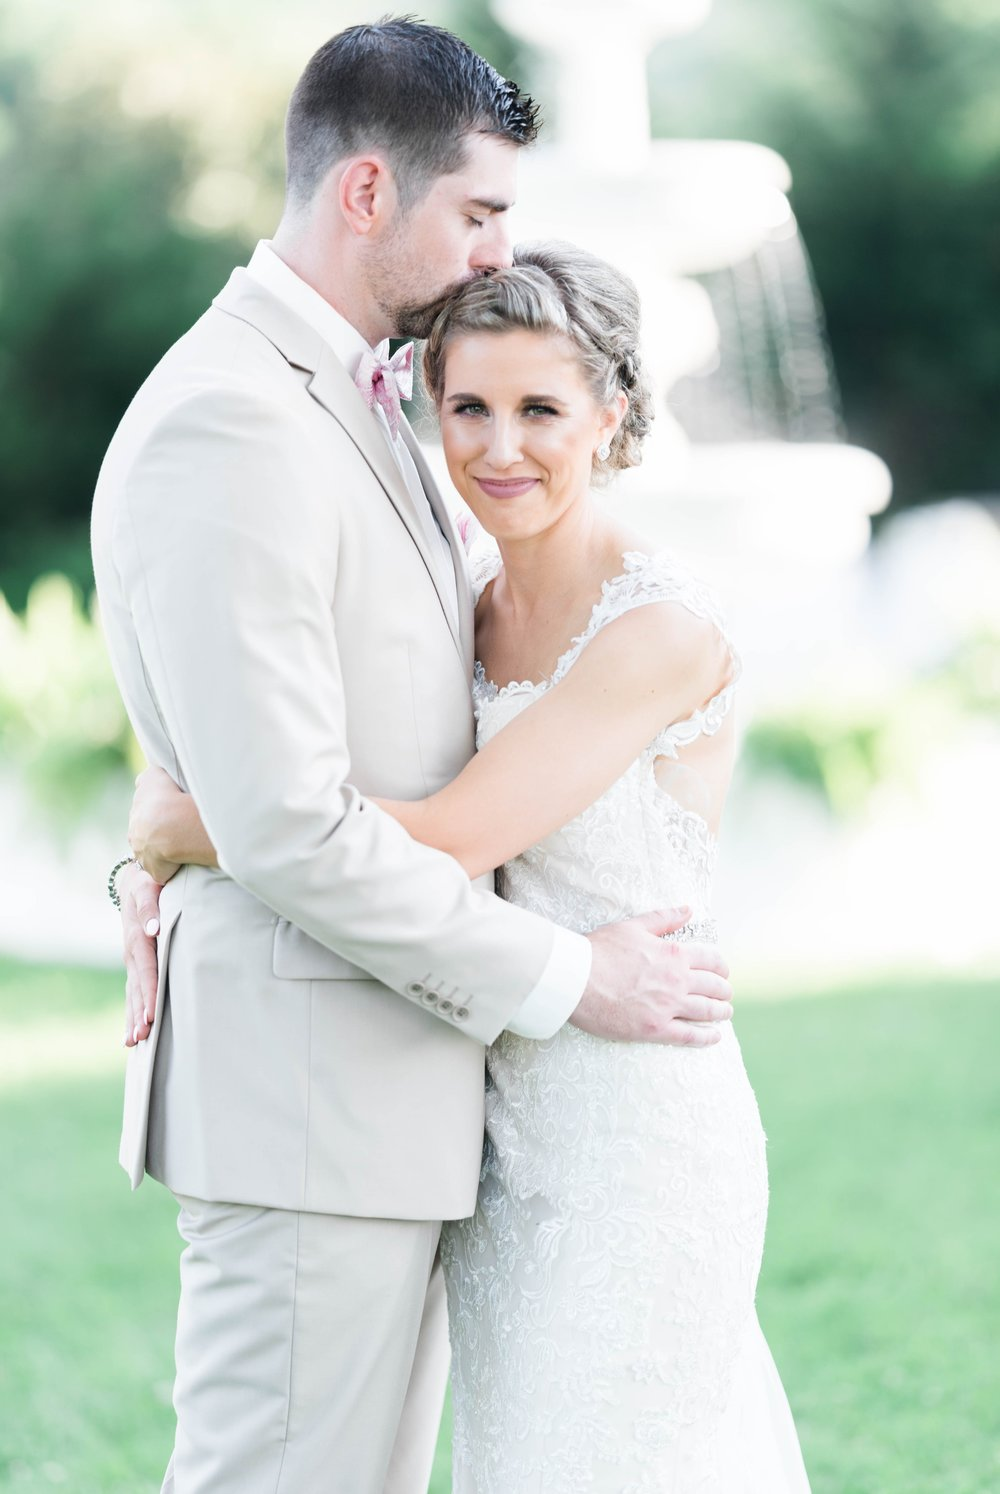 BedfordColumns_EntwinedEvents_Lynchburgwedding_VIrginiaweddingphotographer_ALlisonNIck 11.jpg